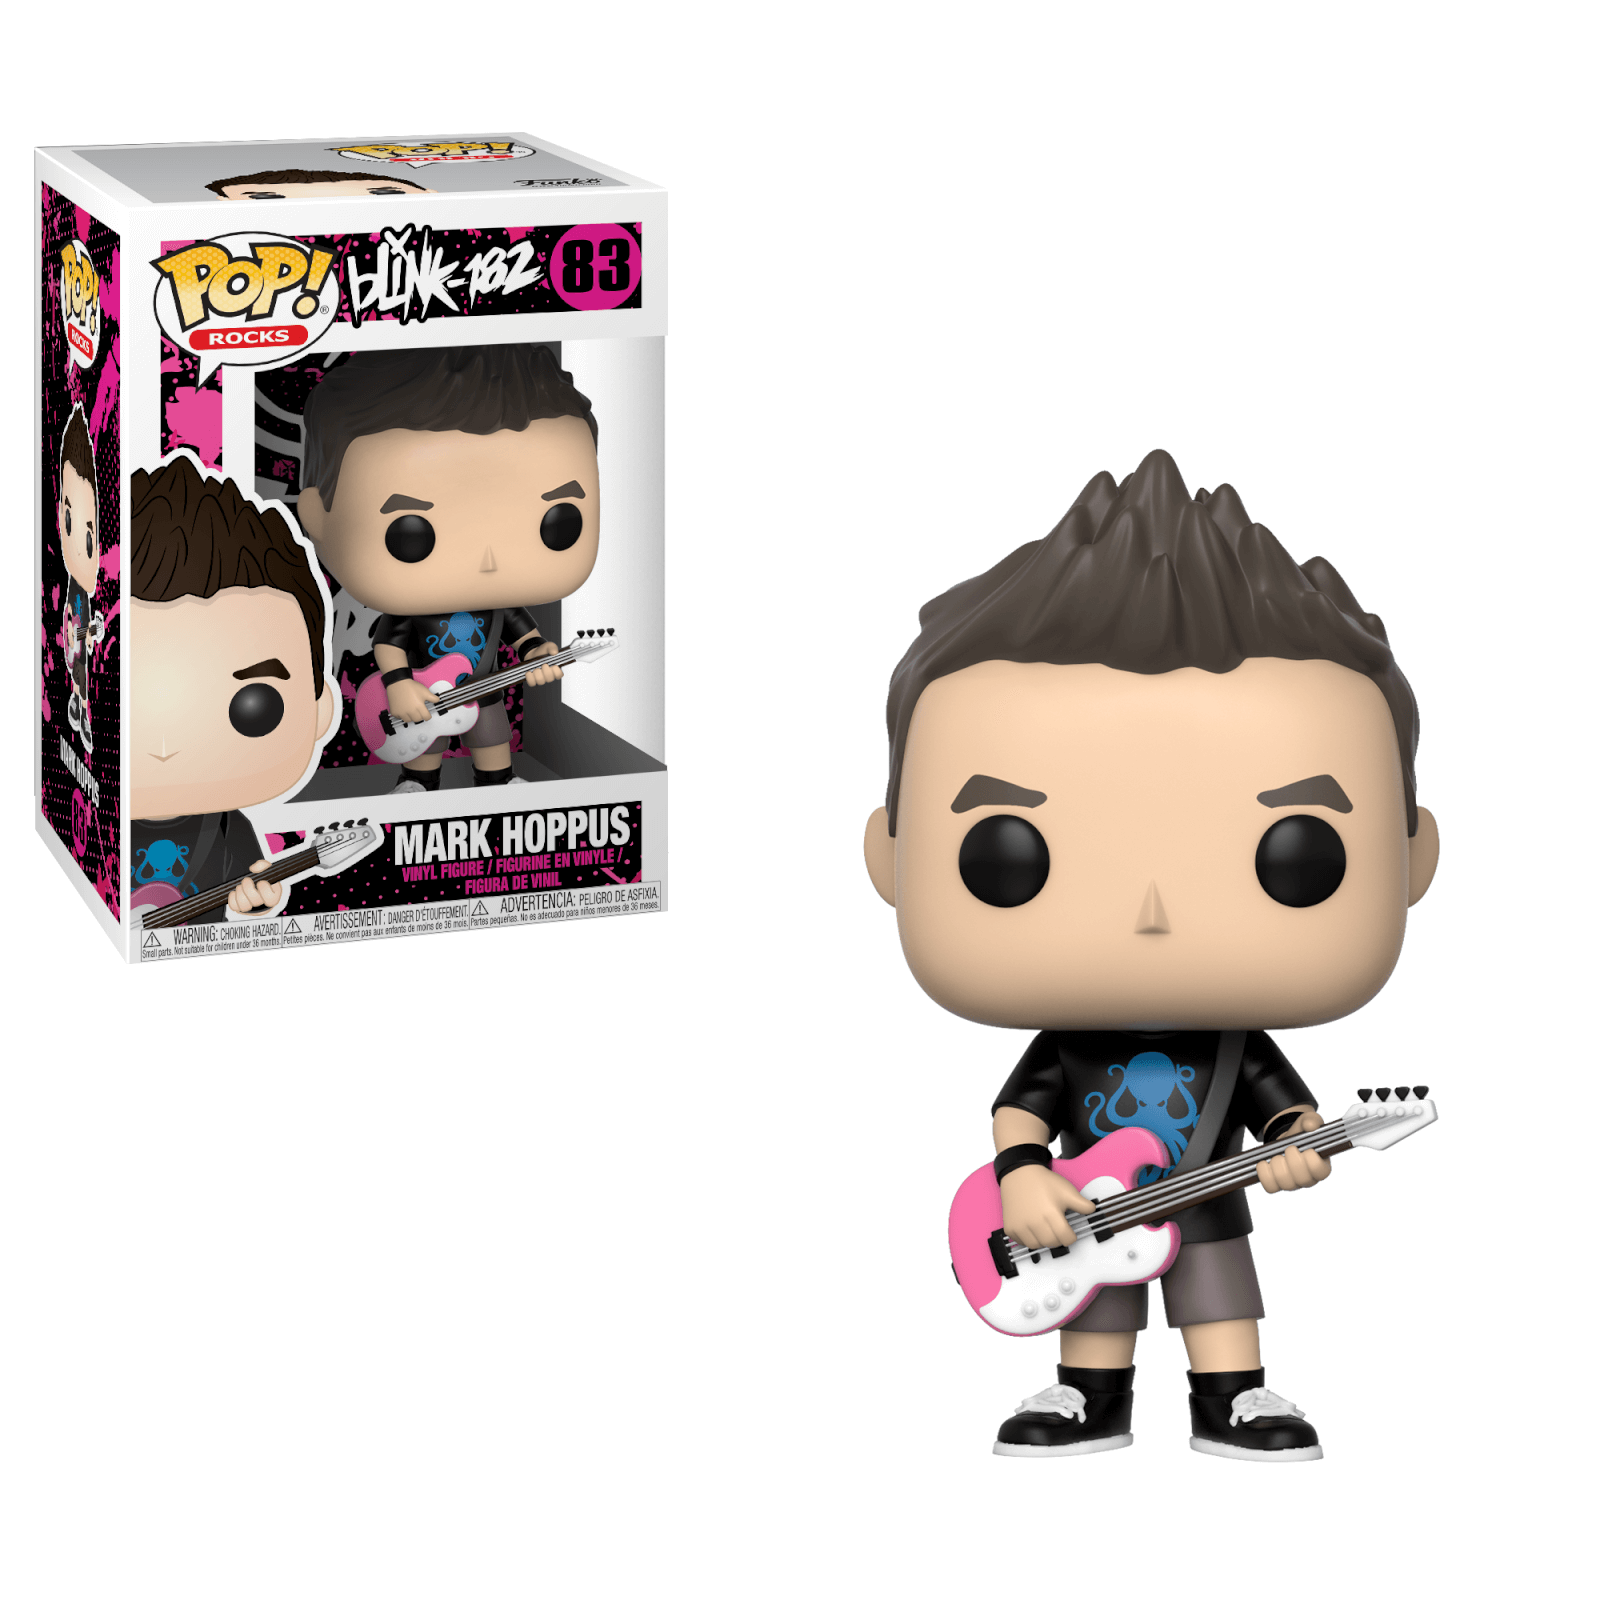 FUNKO POP MARK HOPPUS #83 ROCK BLINK 182